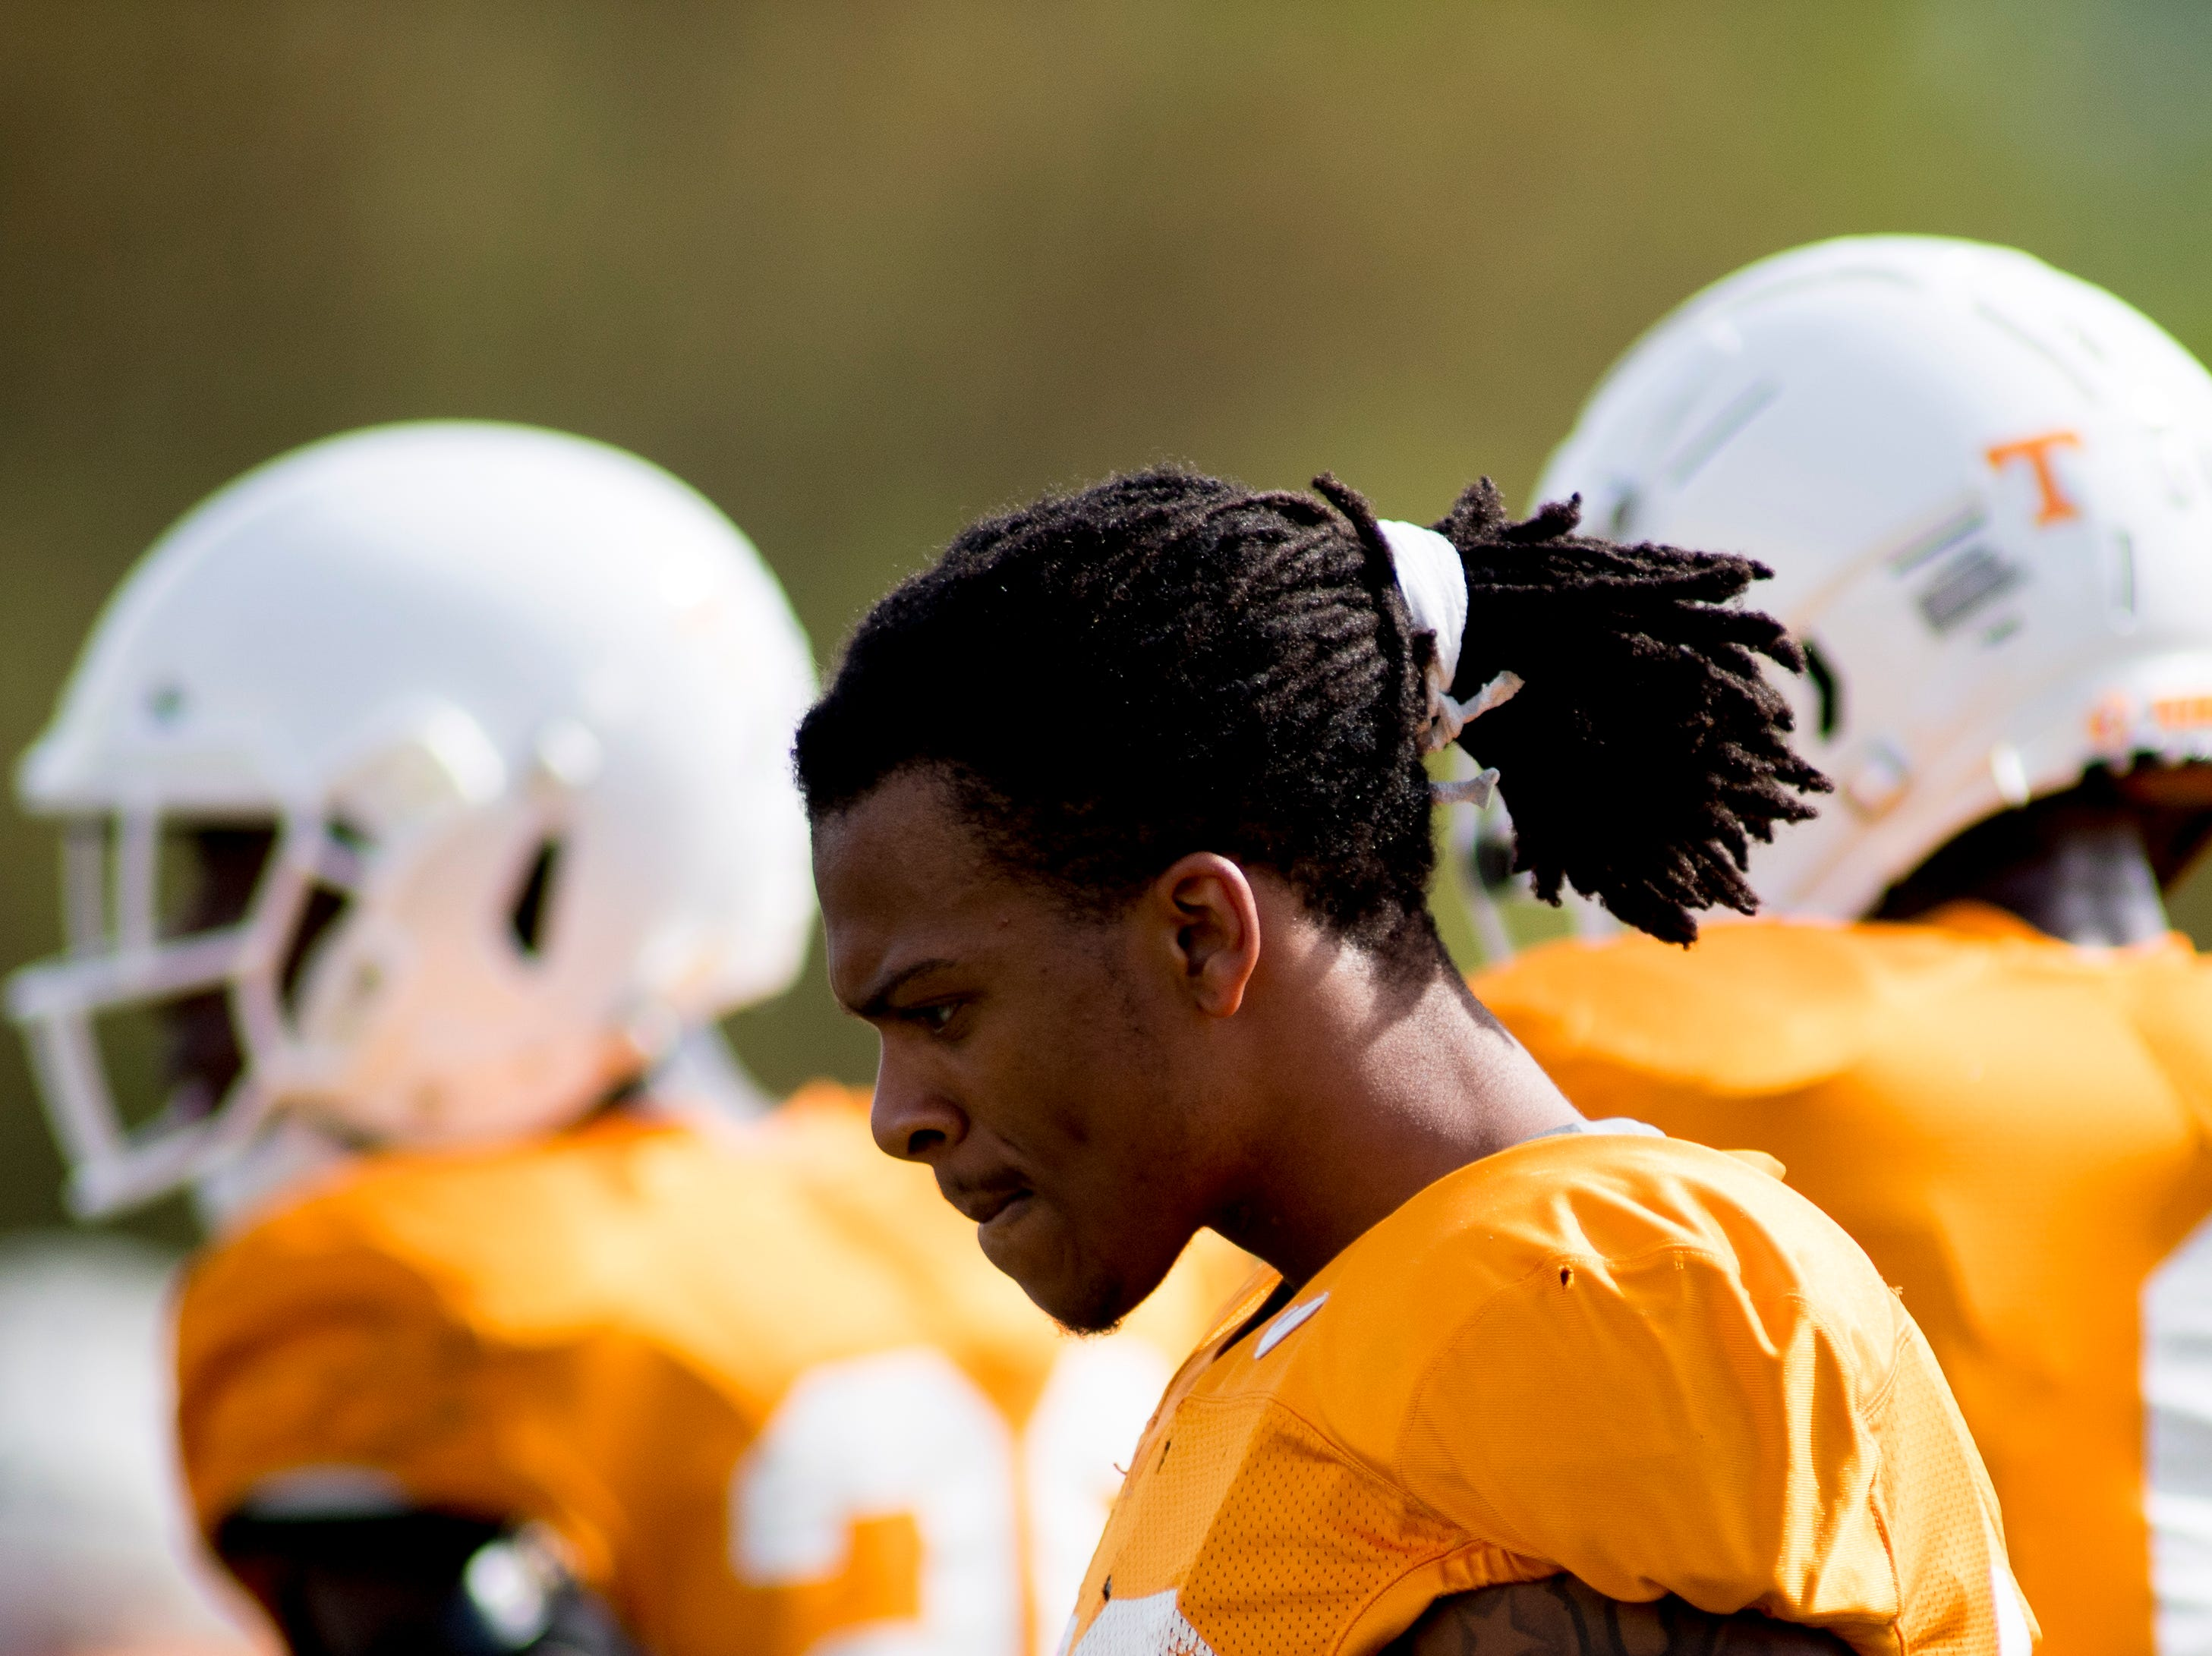 Tennessee's Baylan Buchanan (28) walks down the field during Tennessee spring practice at Haslam Field in Knoxville, Tennessee on Thursday, April 11, 2019.